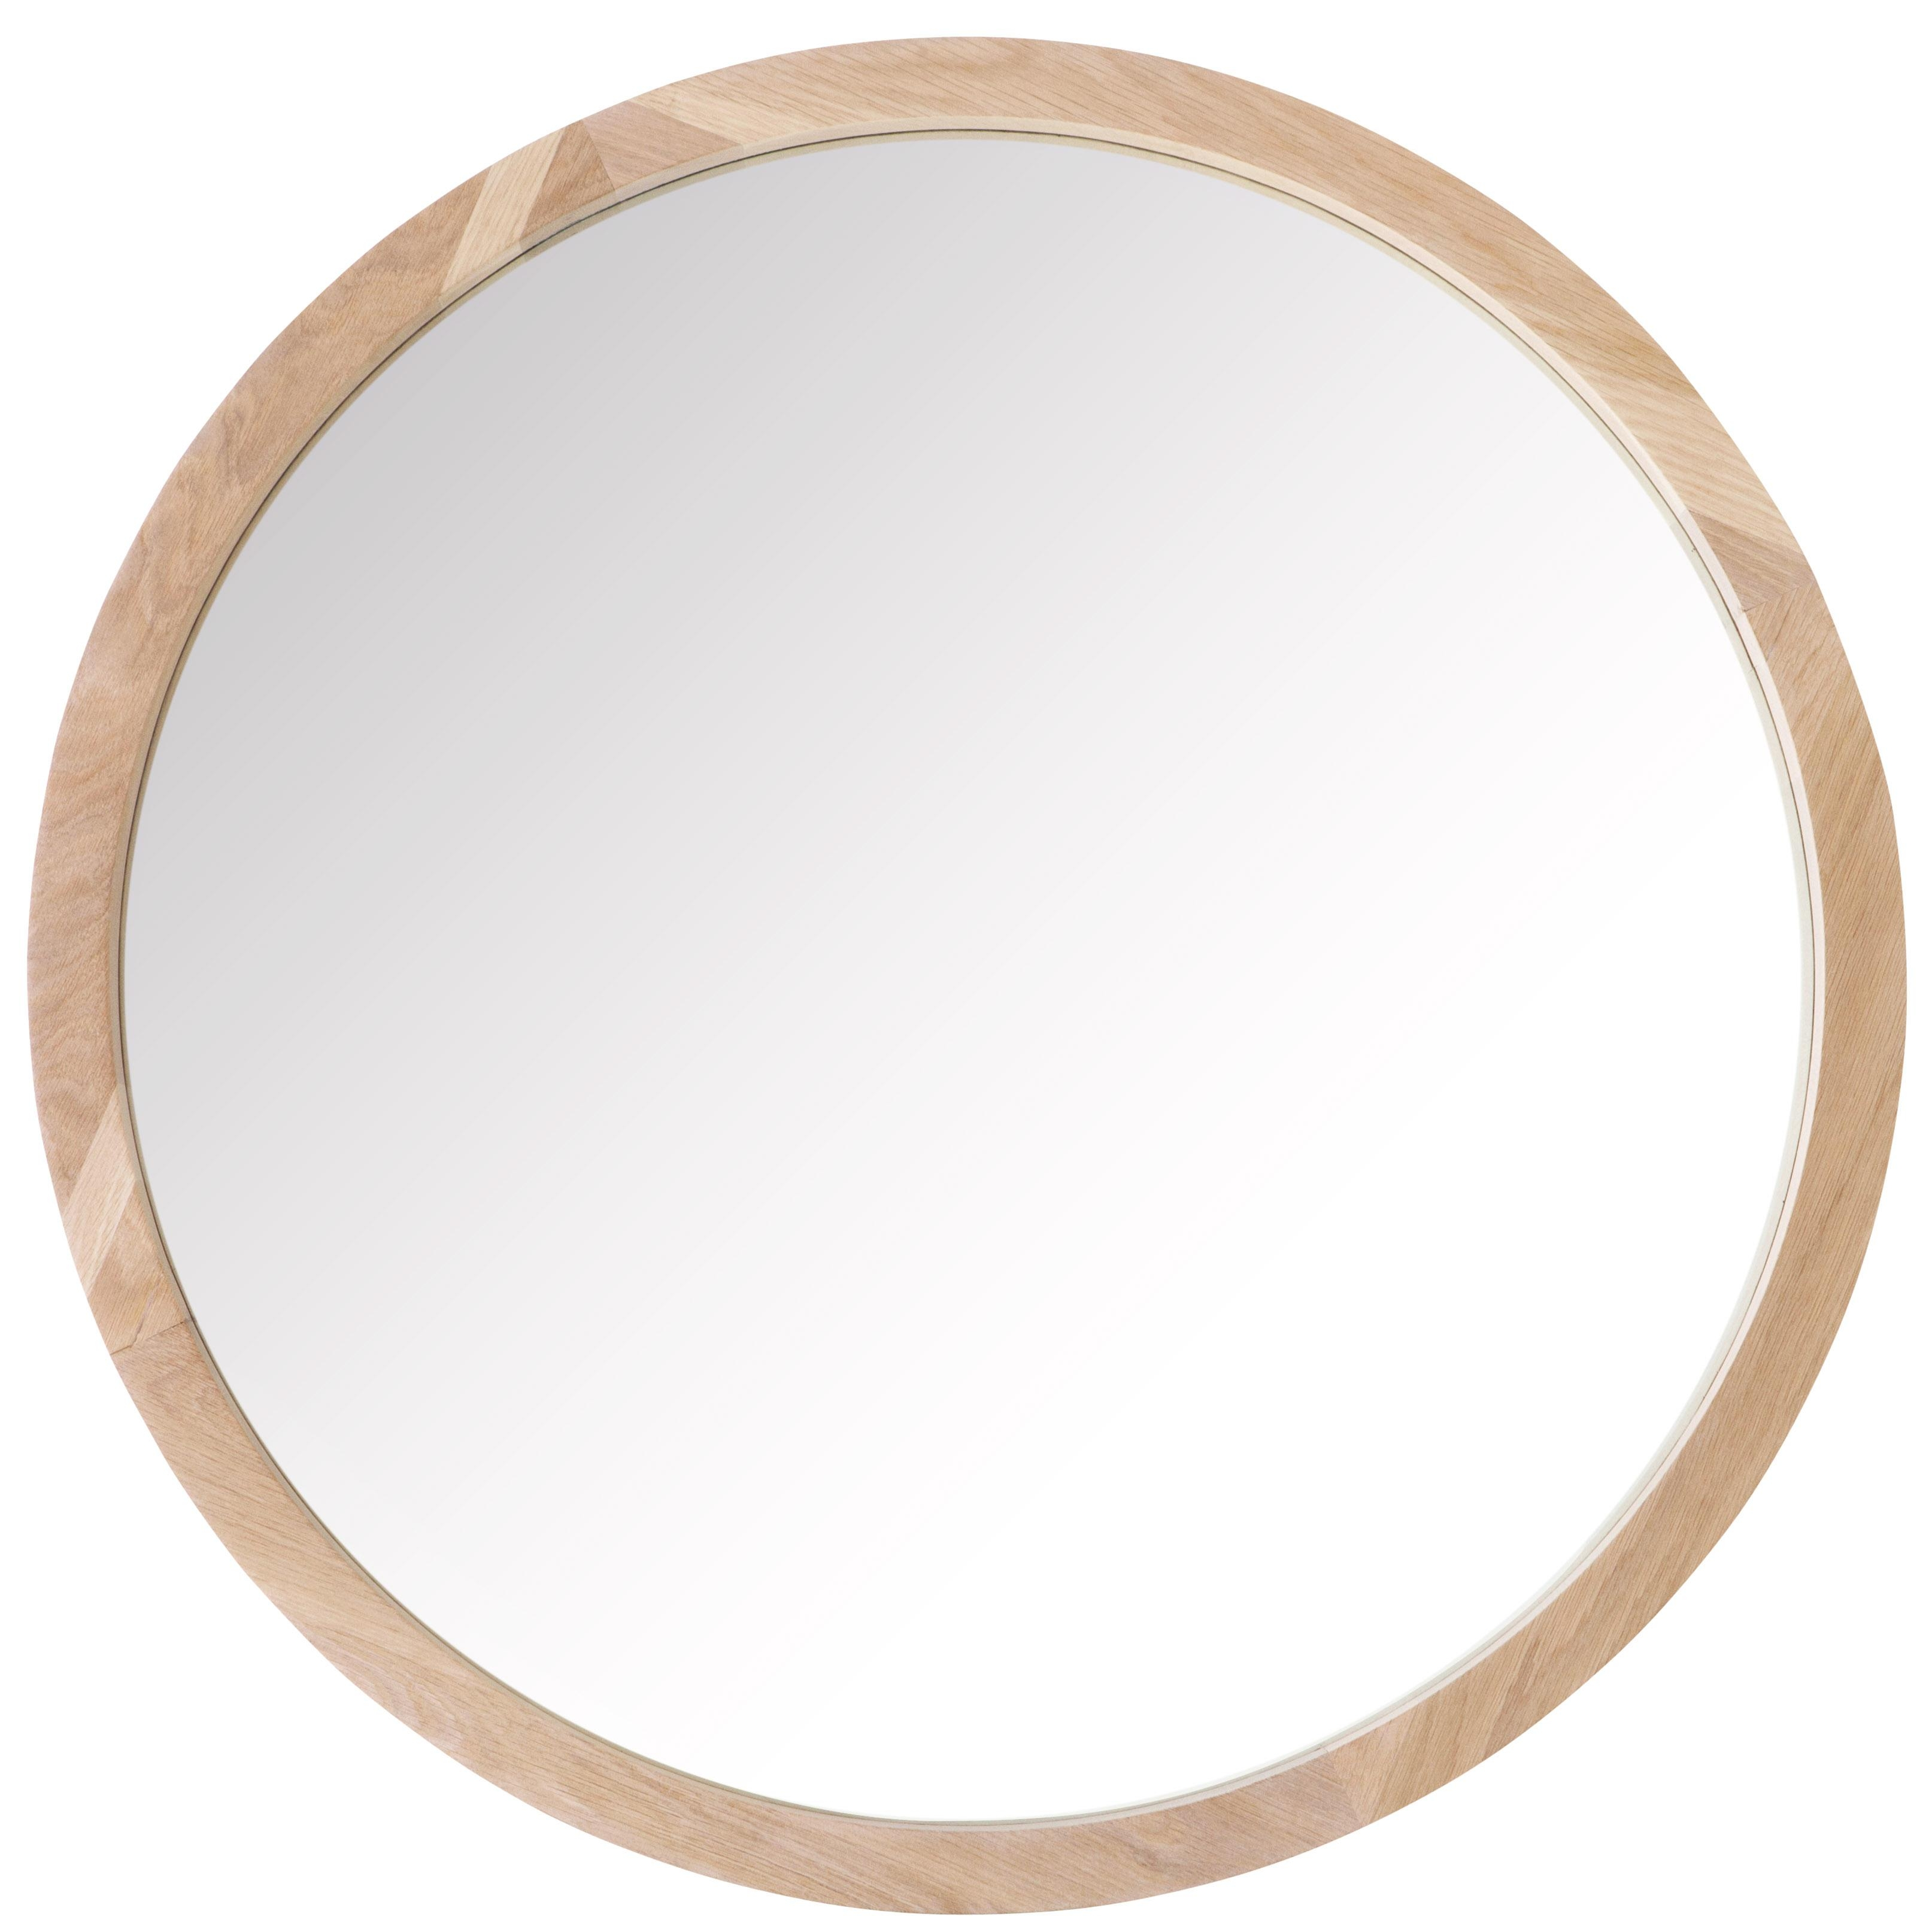 Spati Mirror – Round For Sale | Weylandts South Africa With Round Mirror For Sale (View 14 of 20)